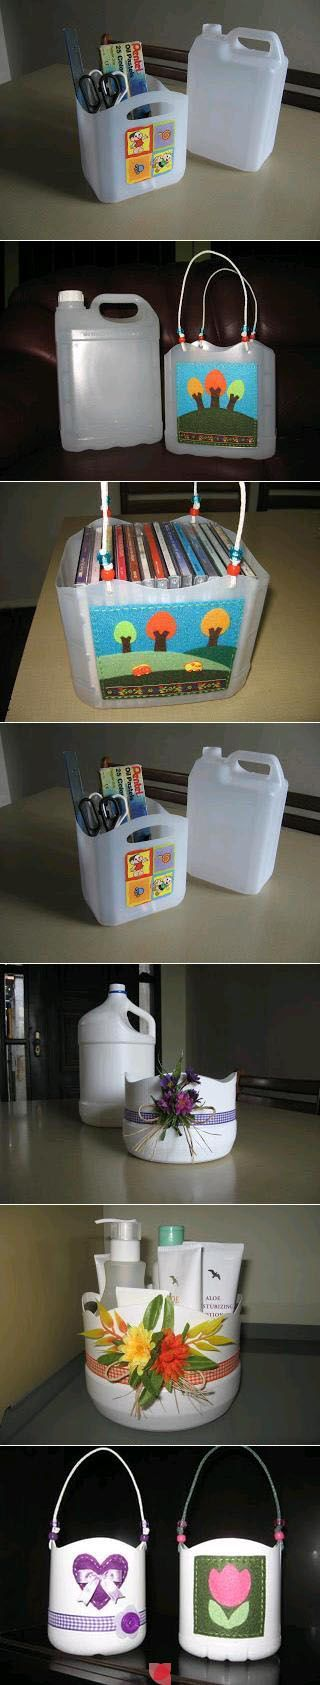 what to do with the cat litter jugs